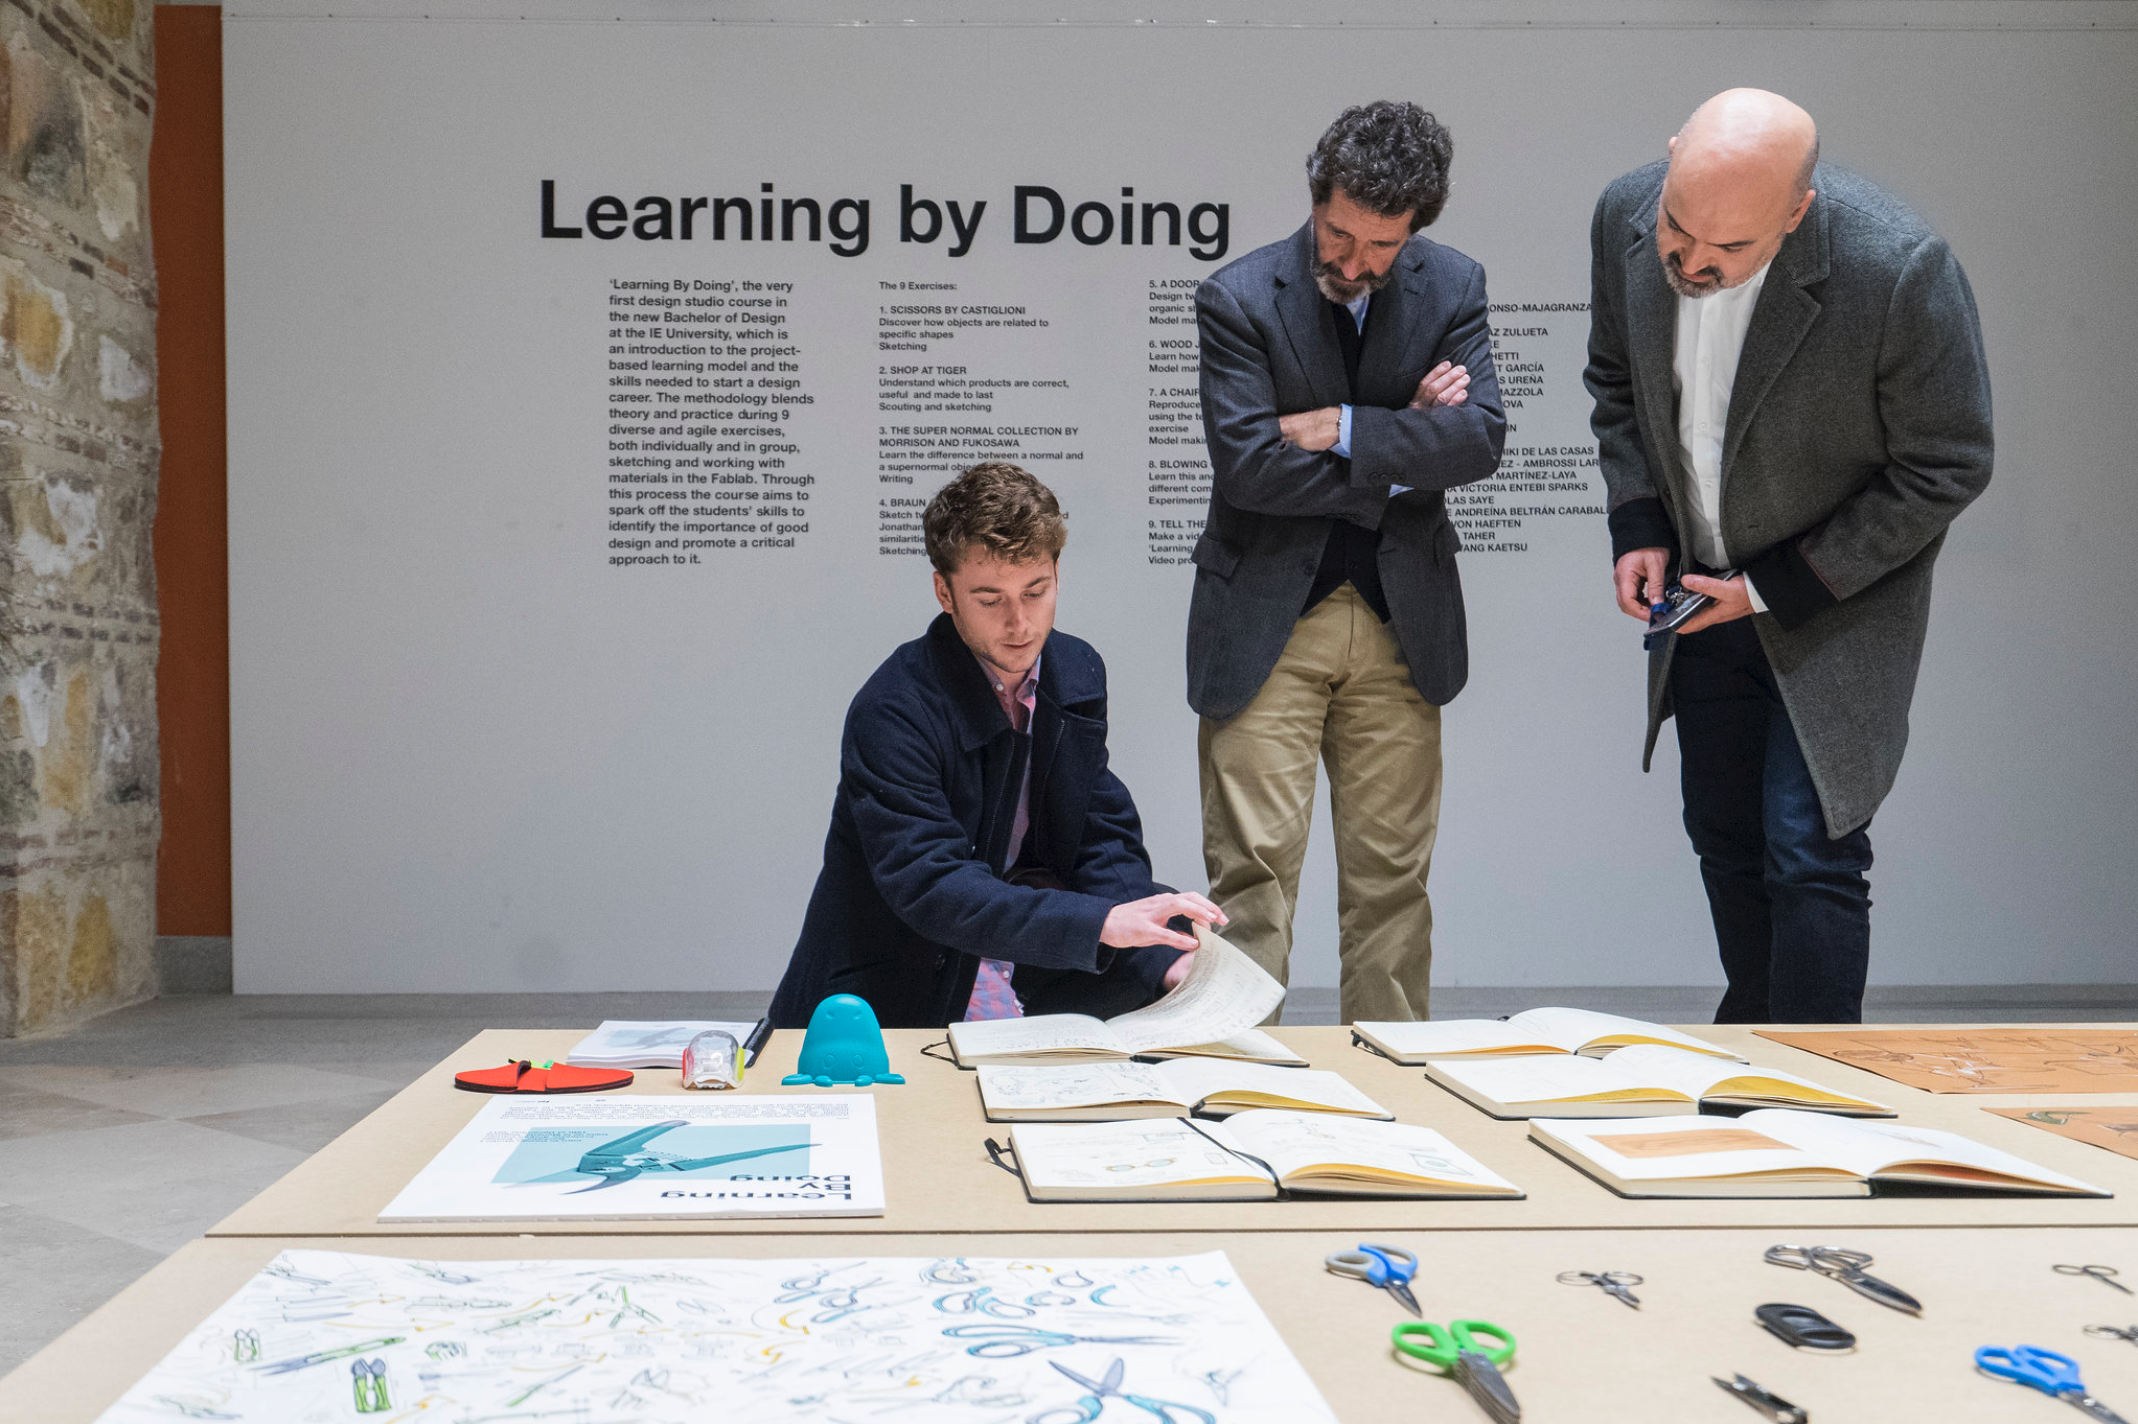 Learning by Doing: An Exhibition by Bachelor of Design